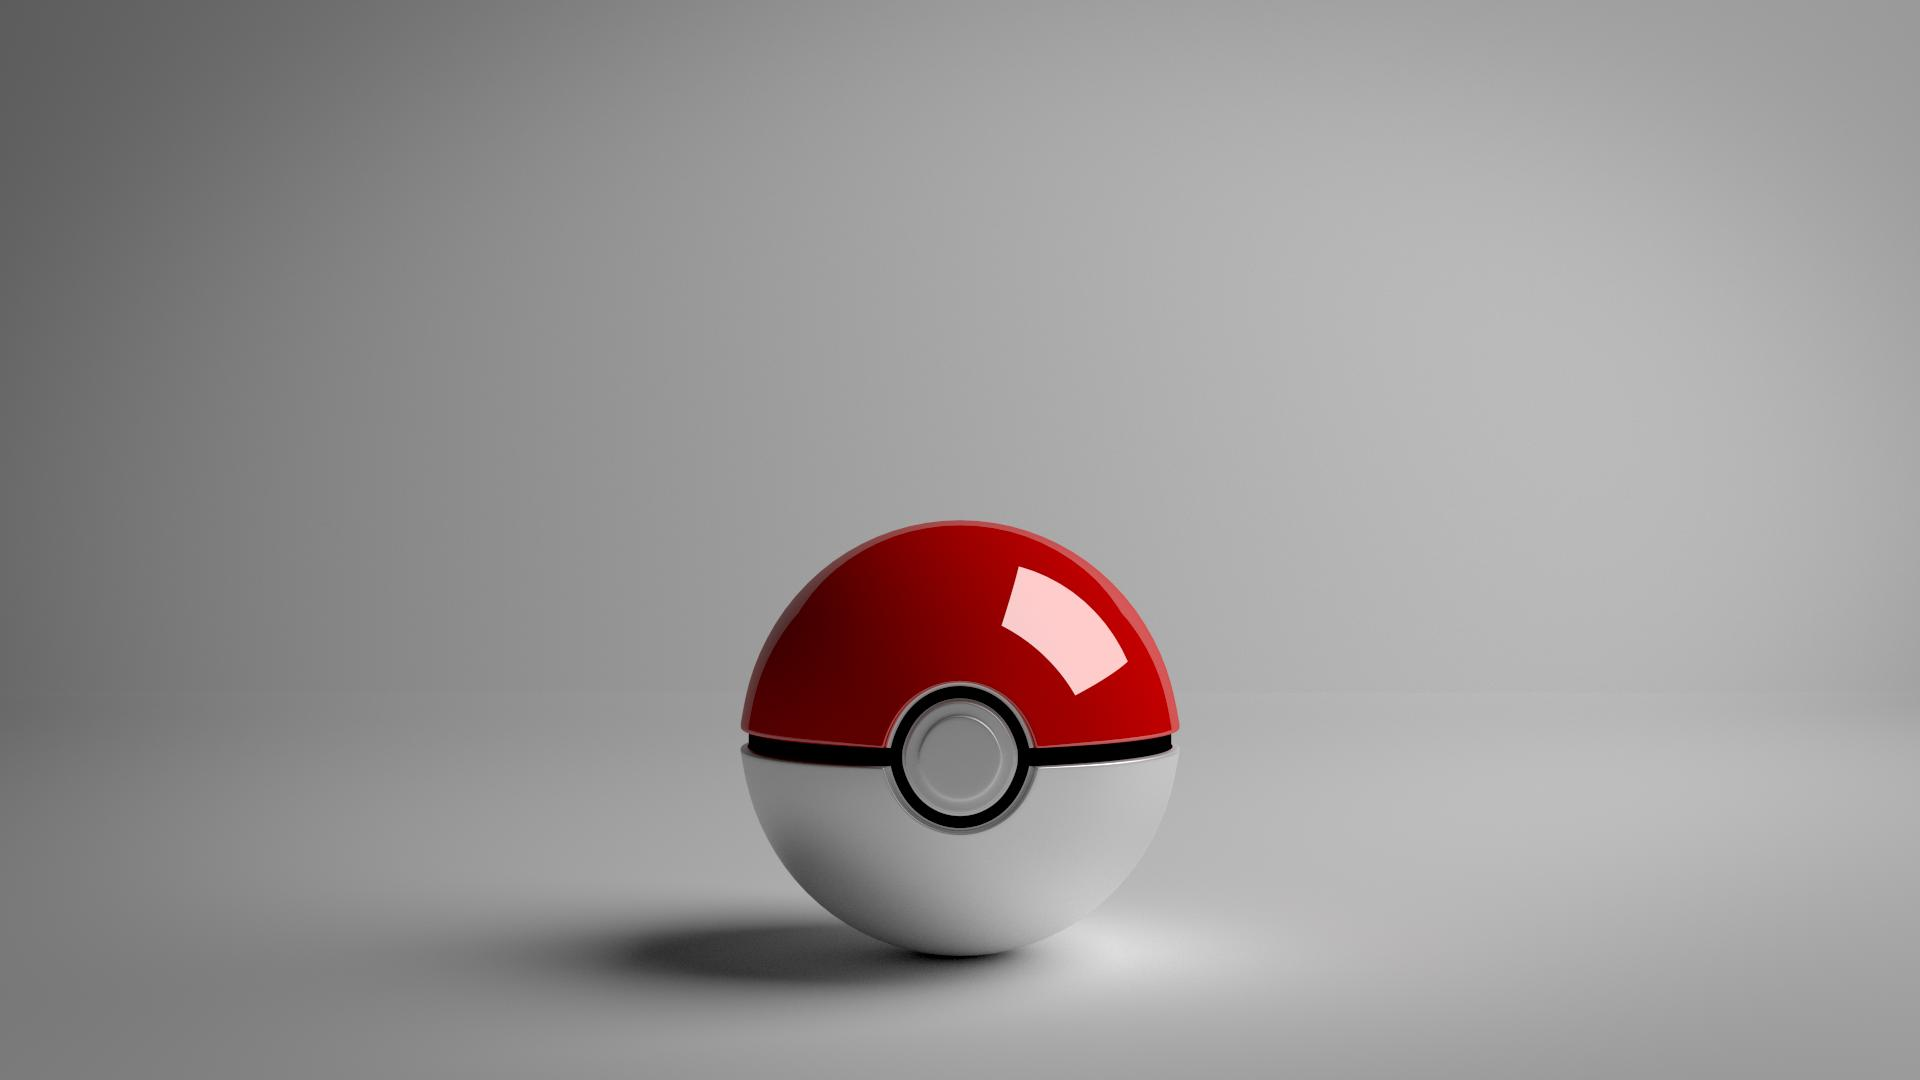 P Pokeball Wallpaper Ideas – Give Your Room a Baby Makeover